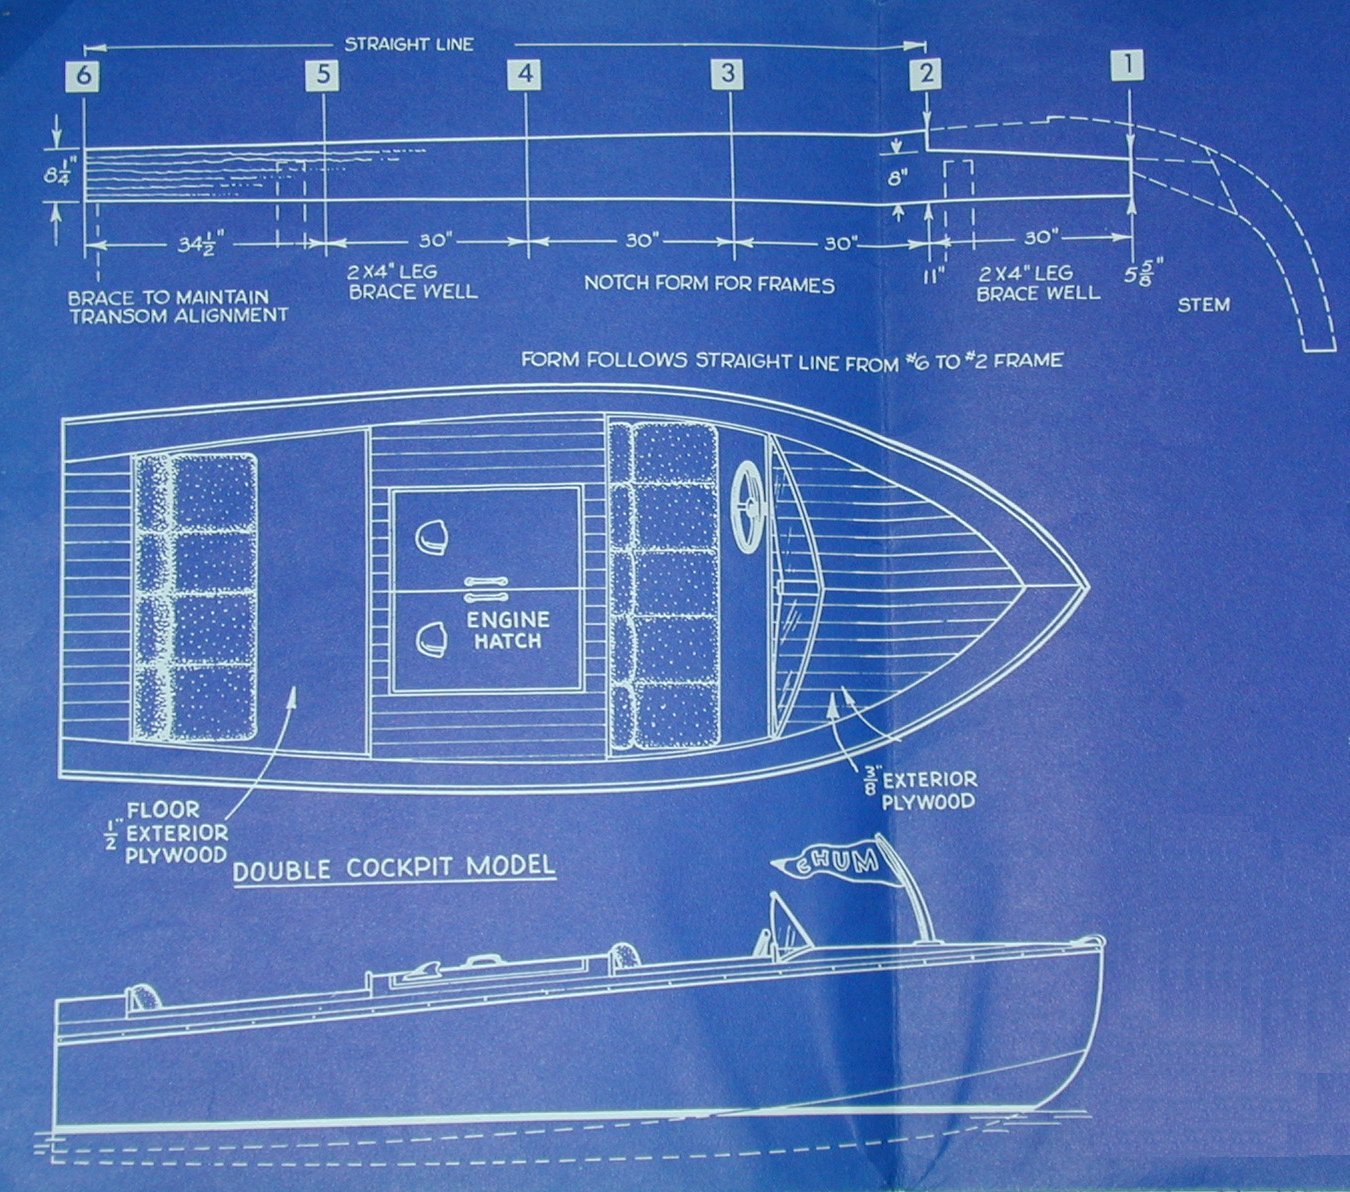 Www Svensons Com Free Boat Plans From Science And Mechanics